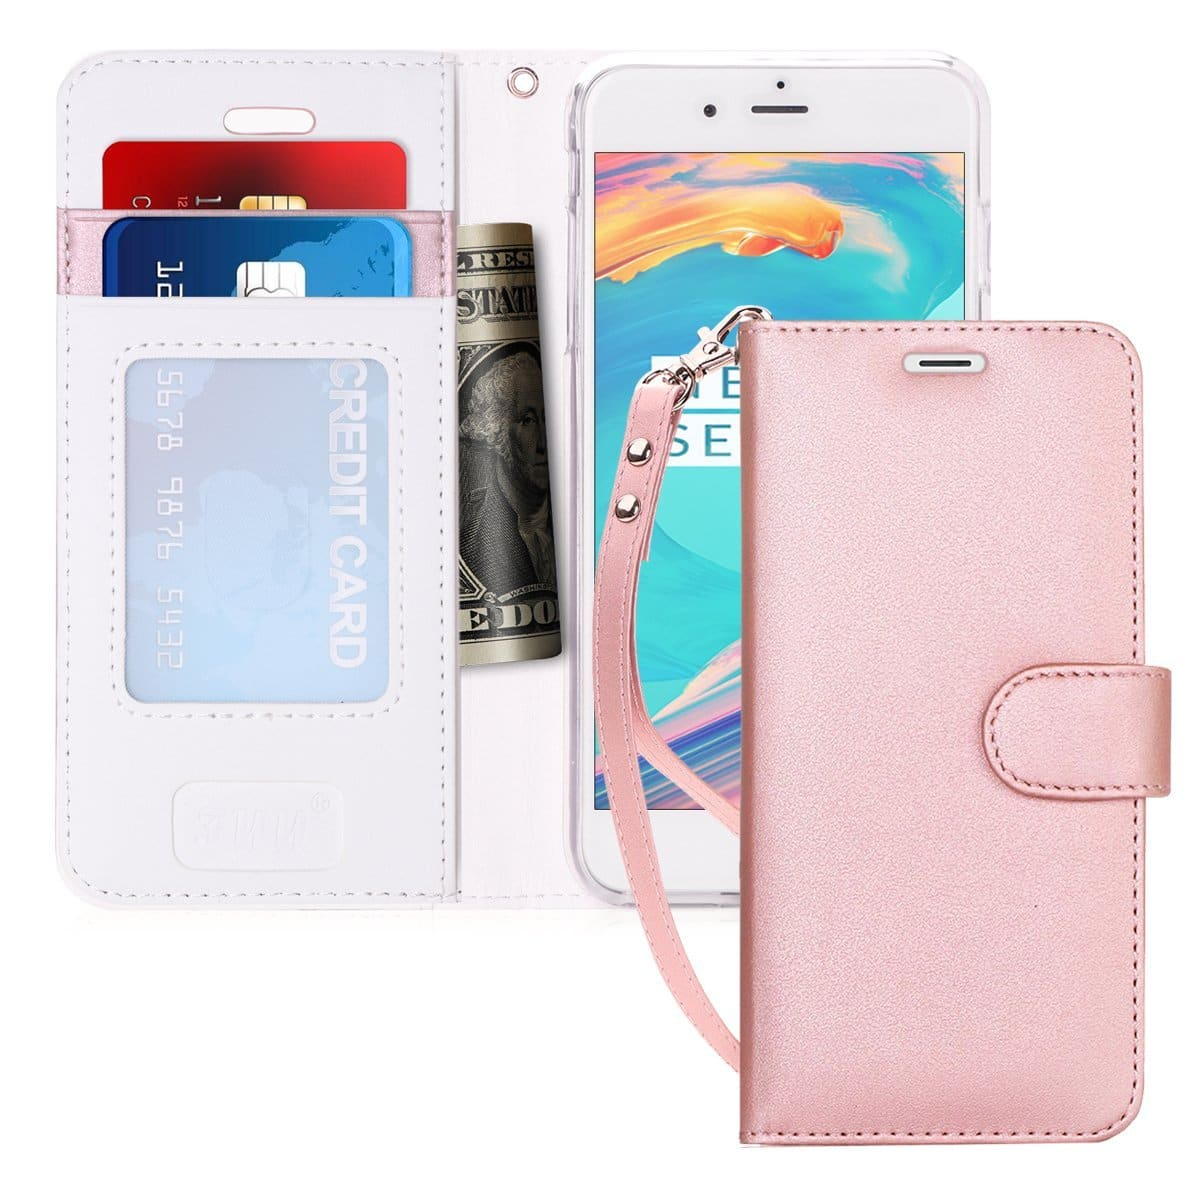 75%off iPhone 7 Case, iPhone 8 Case, FYY [Kickstand Feature] Flip Folio Leather Wallet Case with ID&Credit Card Pockets for Apple iPhone 8/7 (4.7 inch) Rose Gold $1.99